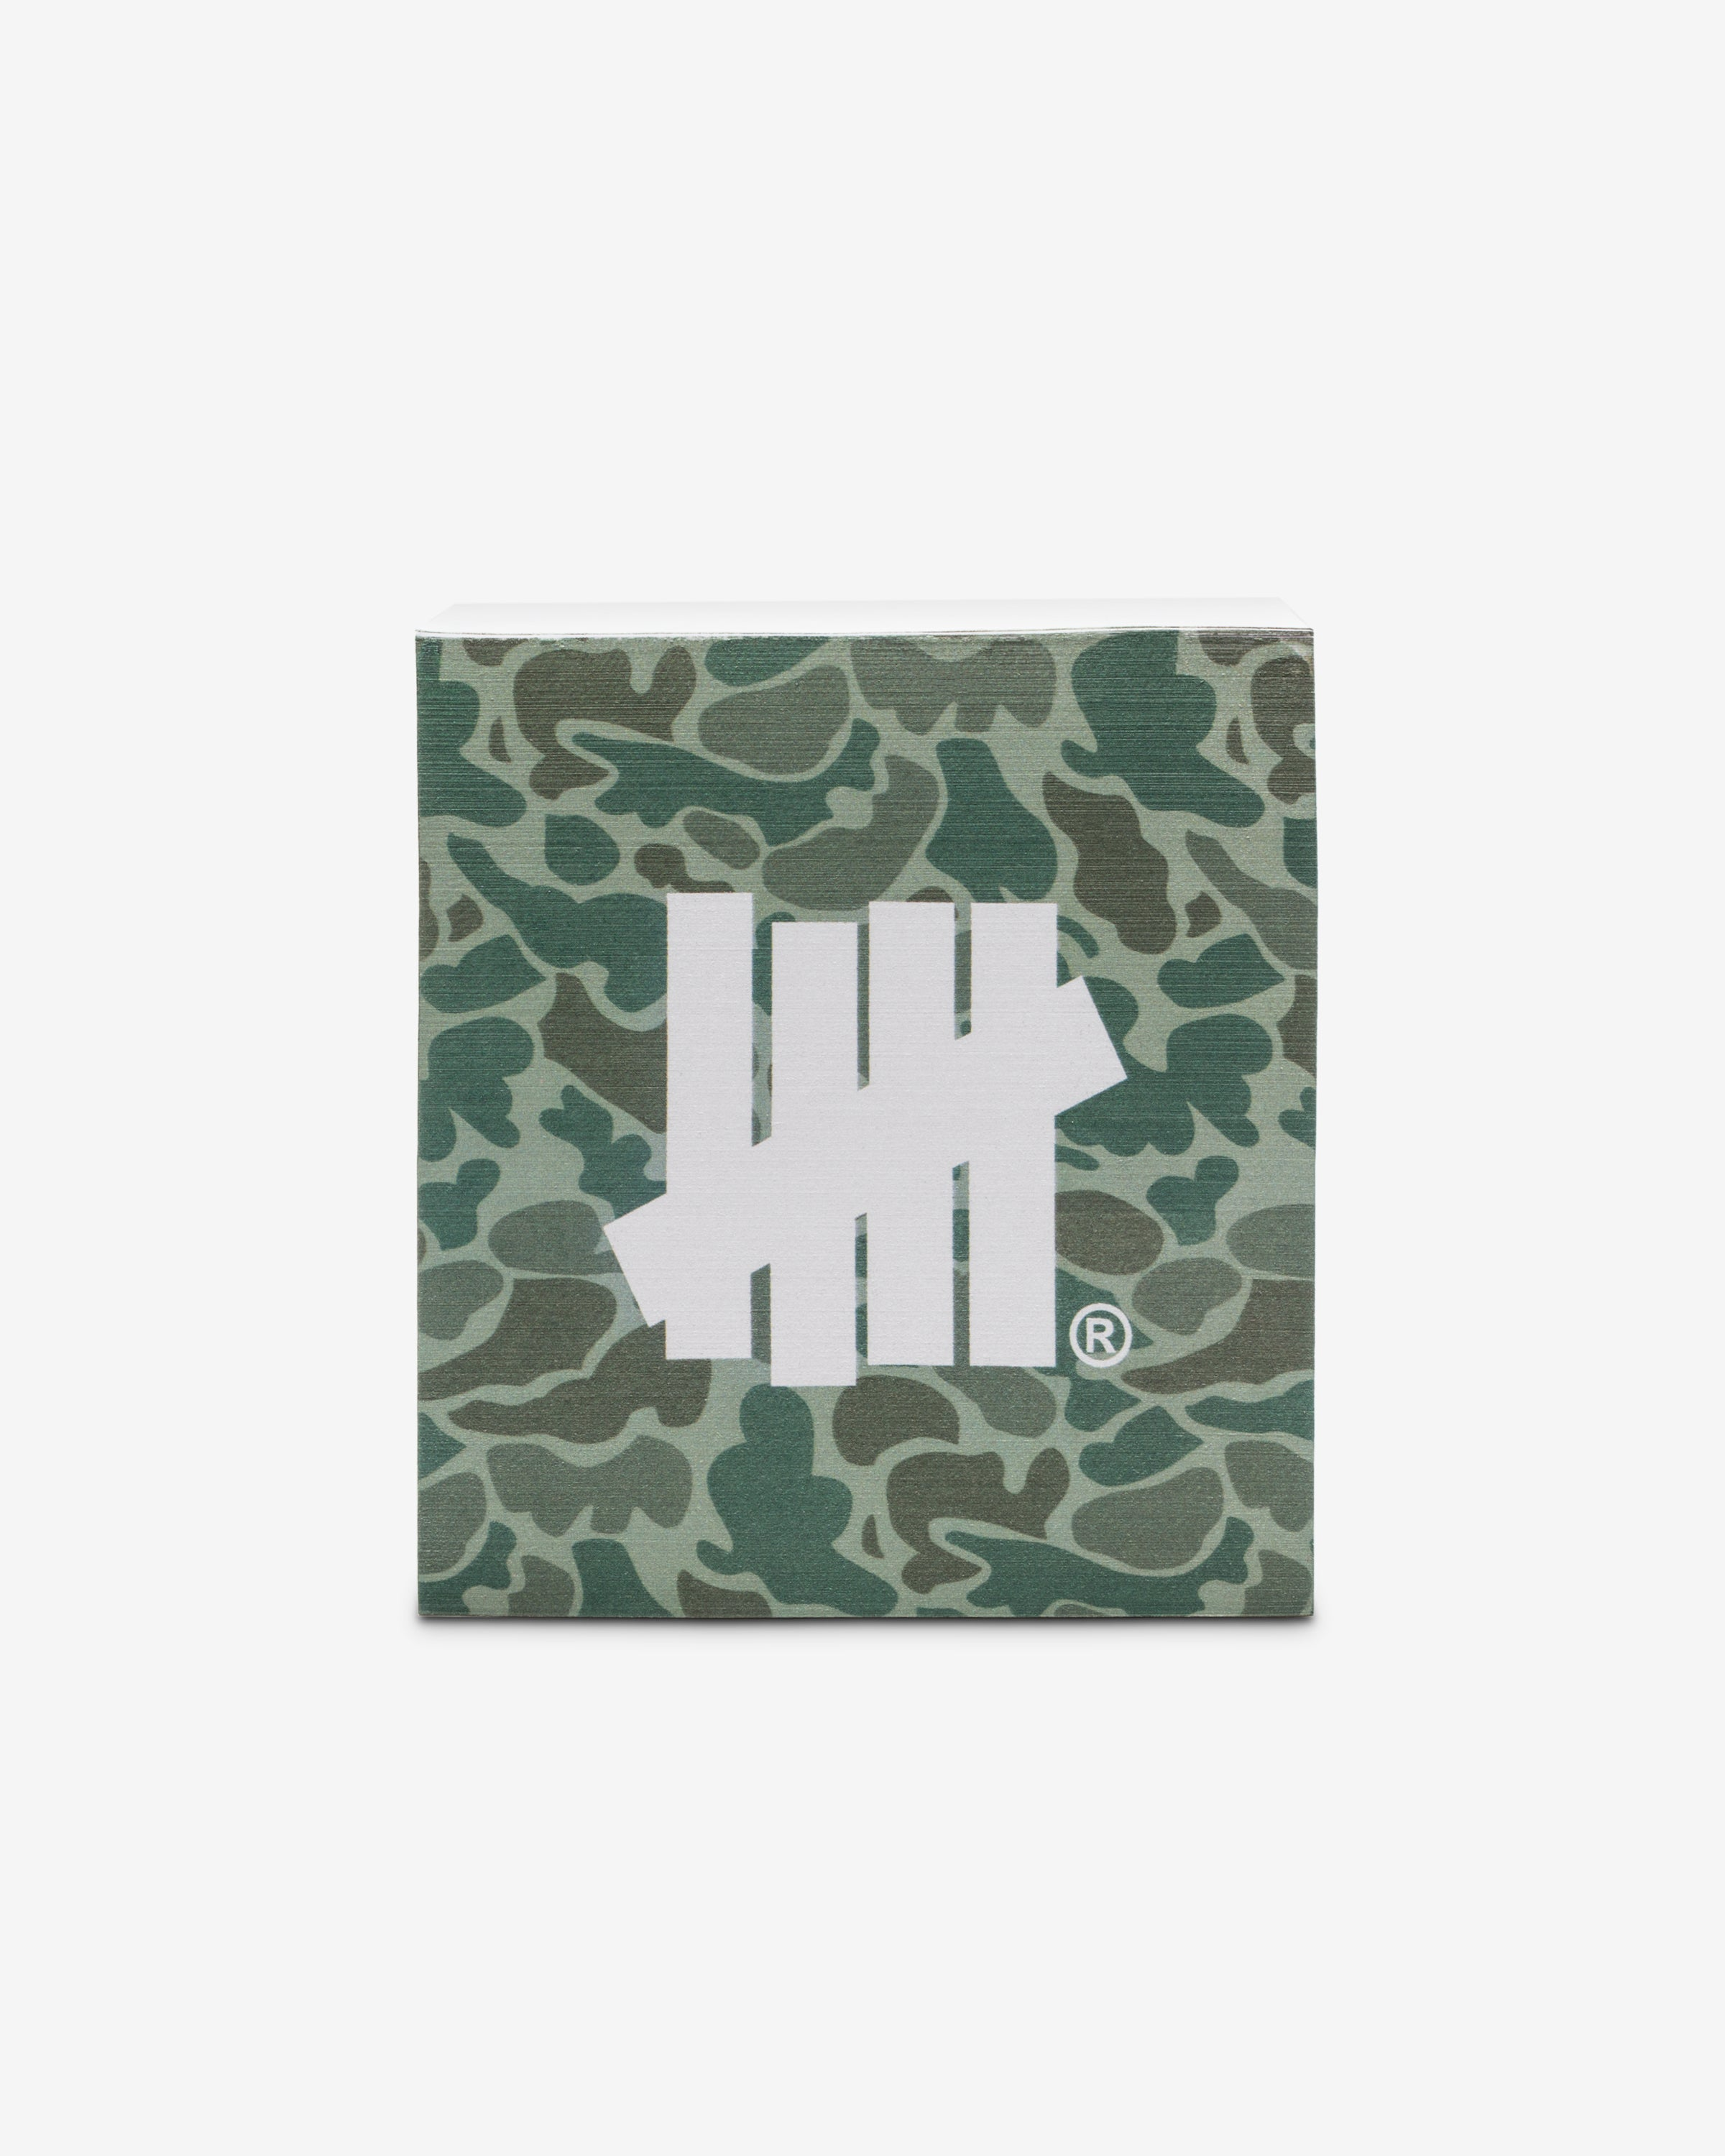 UNDEFEATED POST-IT NOTES - JUNGLE DUCK CAMO